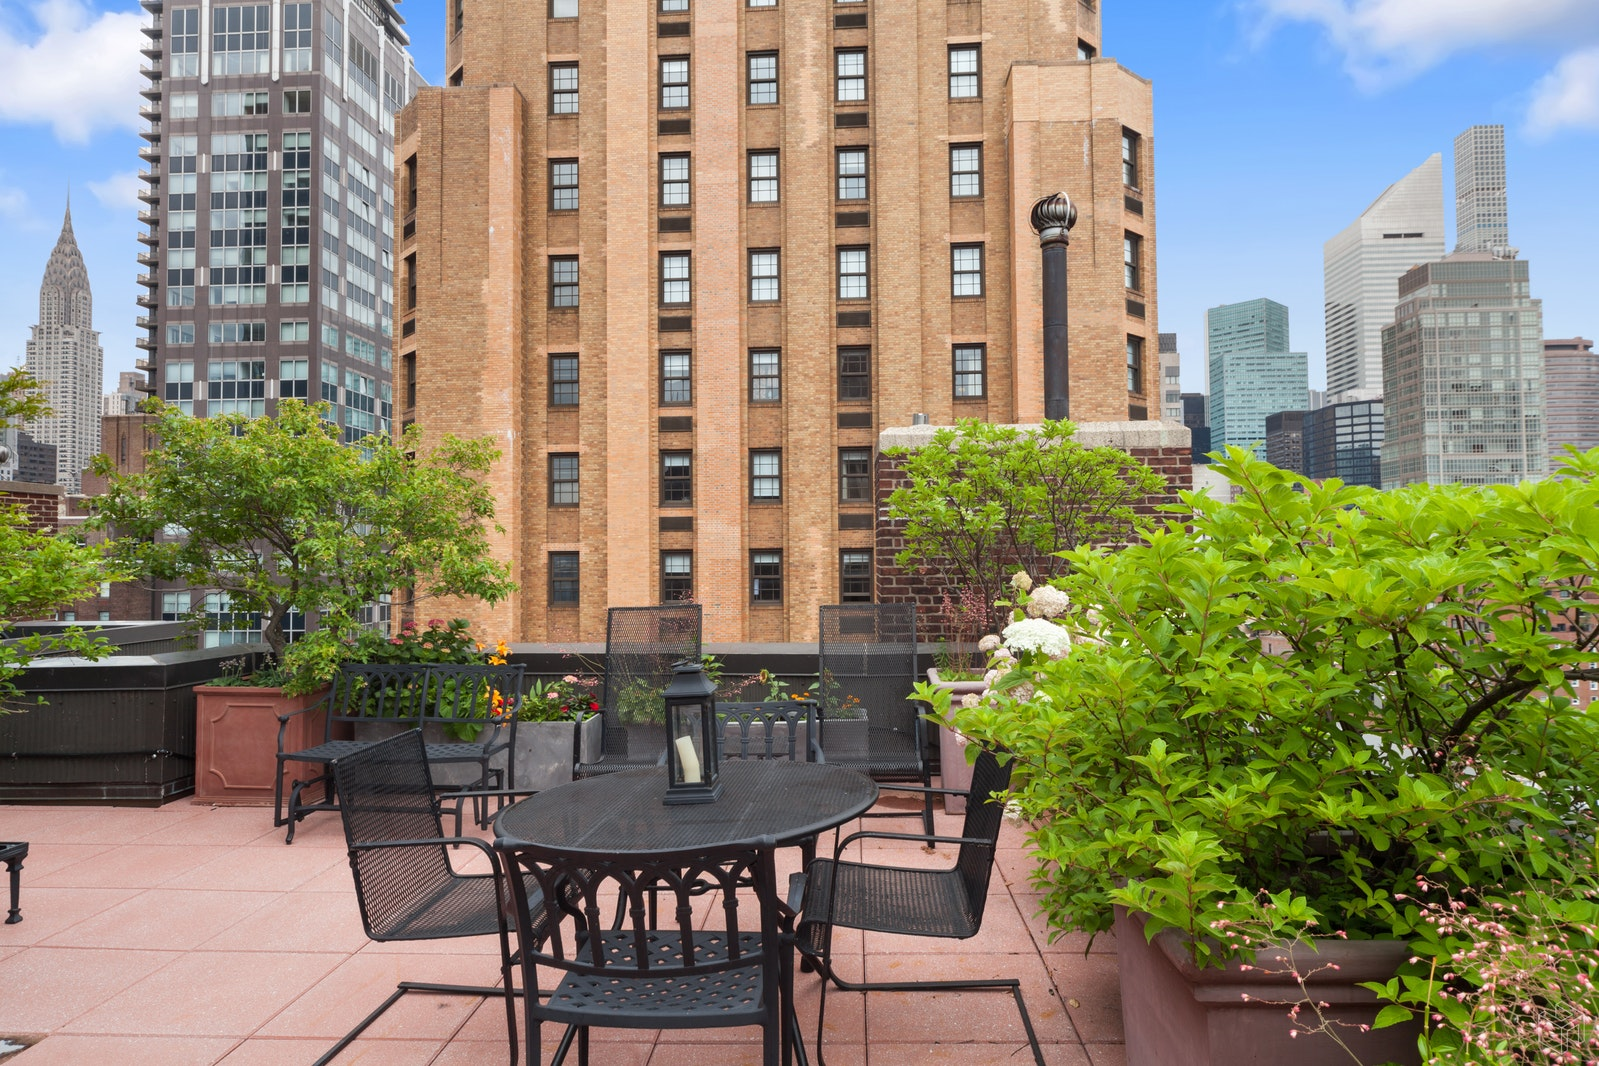 1 Bdr Beekman COOP-WBFP, Low Maintenance, Midtown East, NYC, 10017, $509,000, Property For Sale, Halstead Real Estate, Photo 6